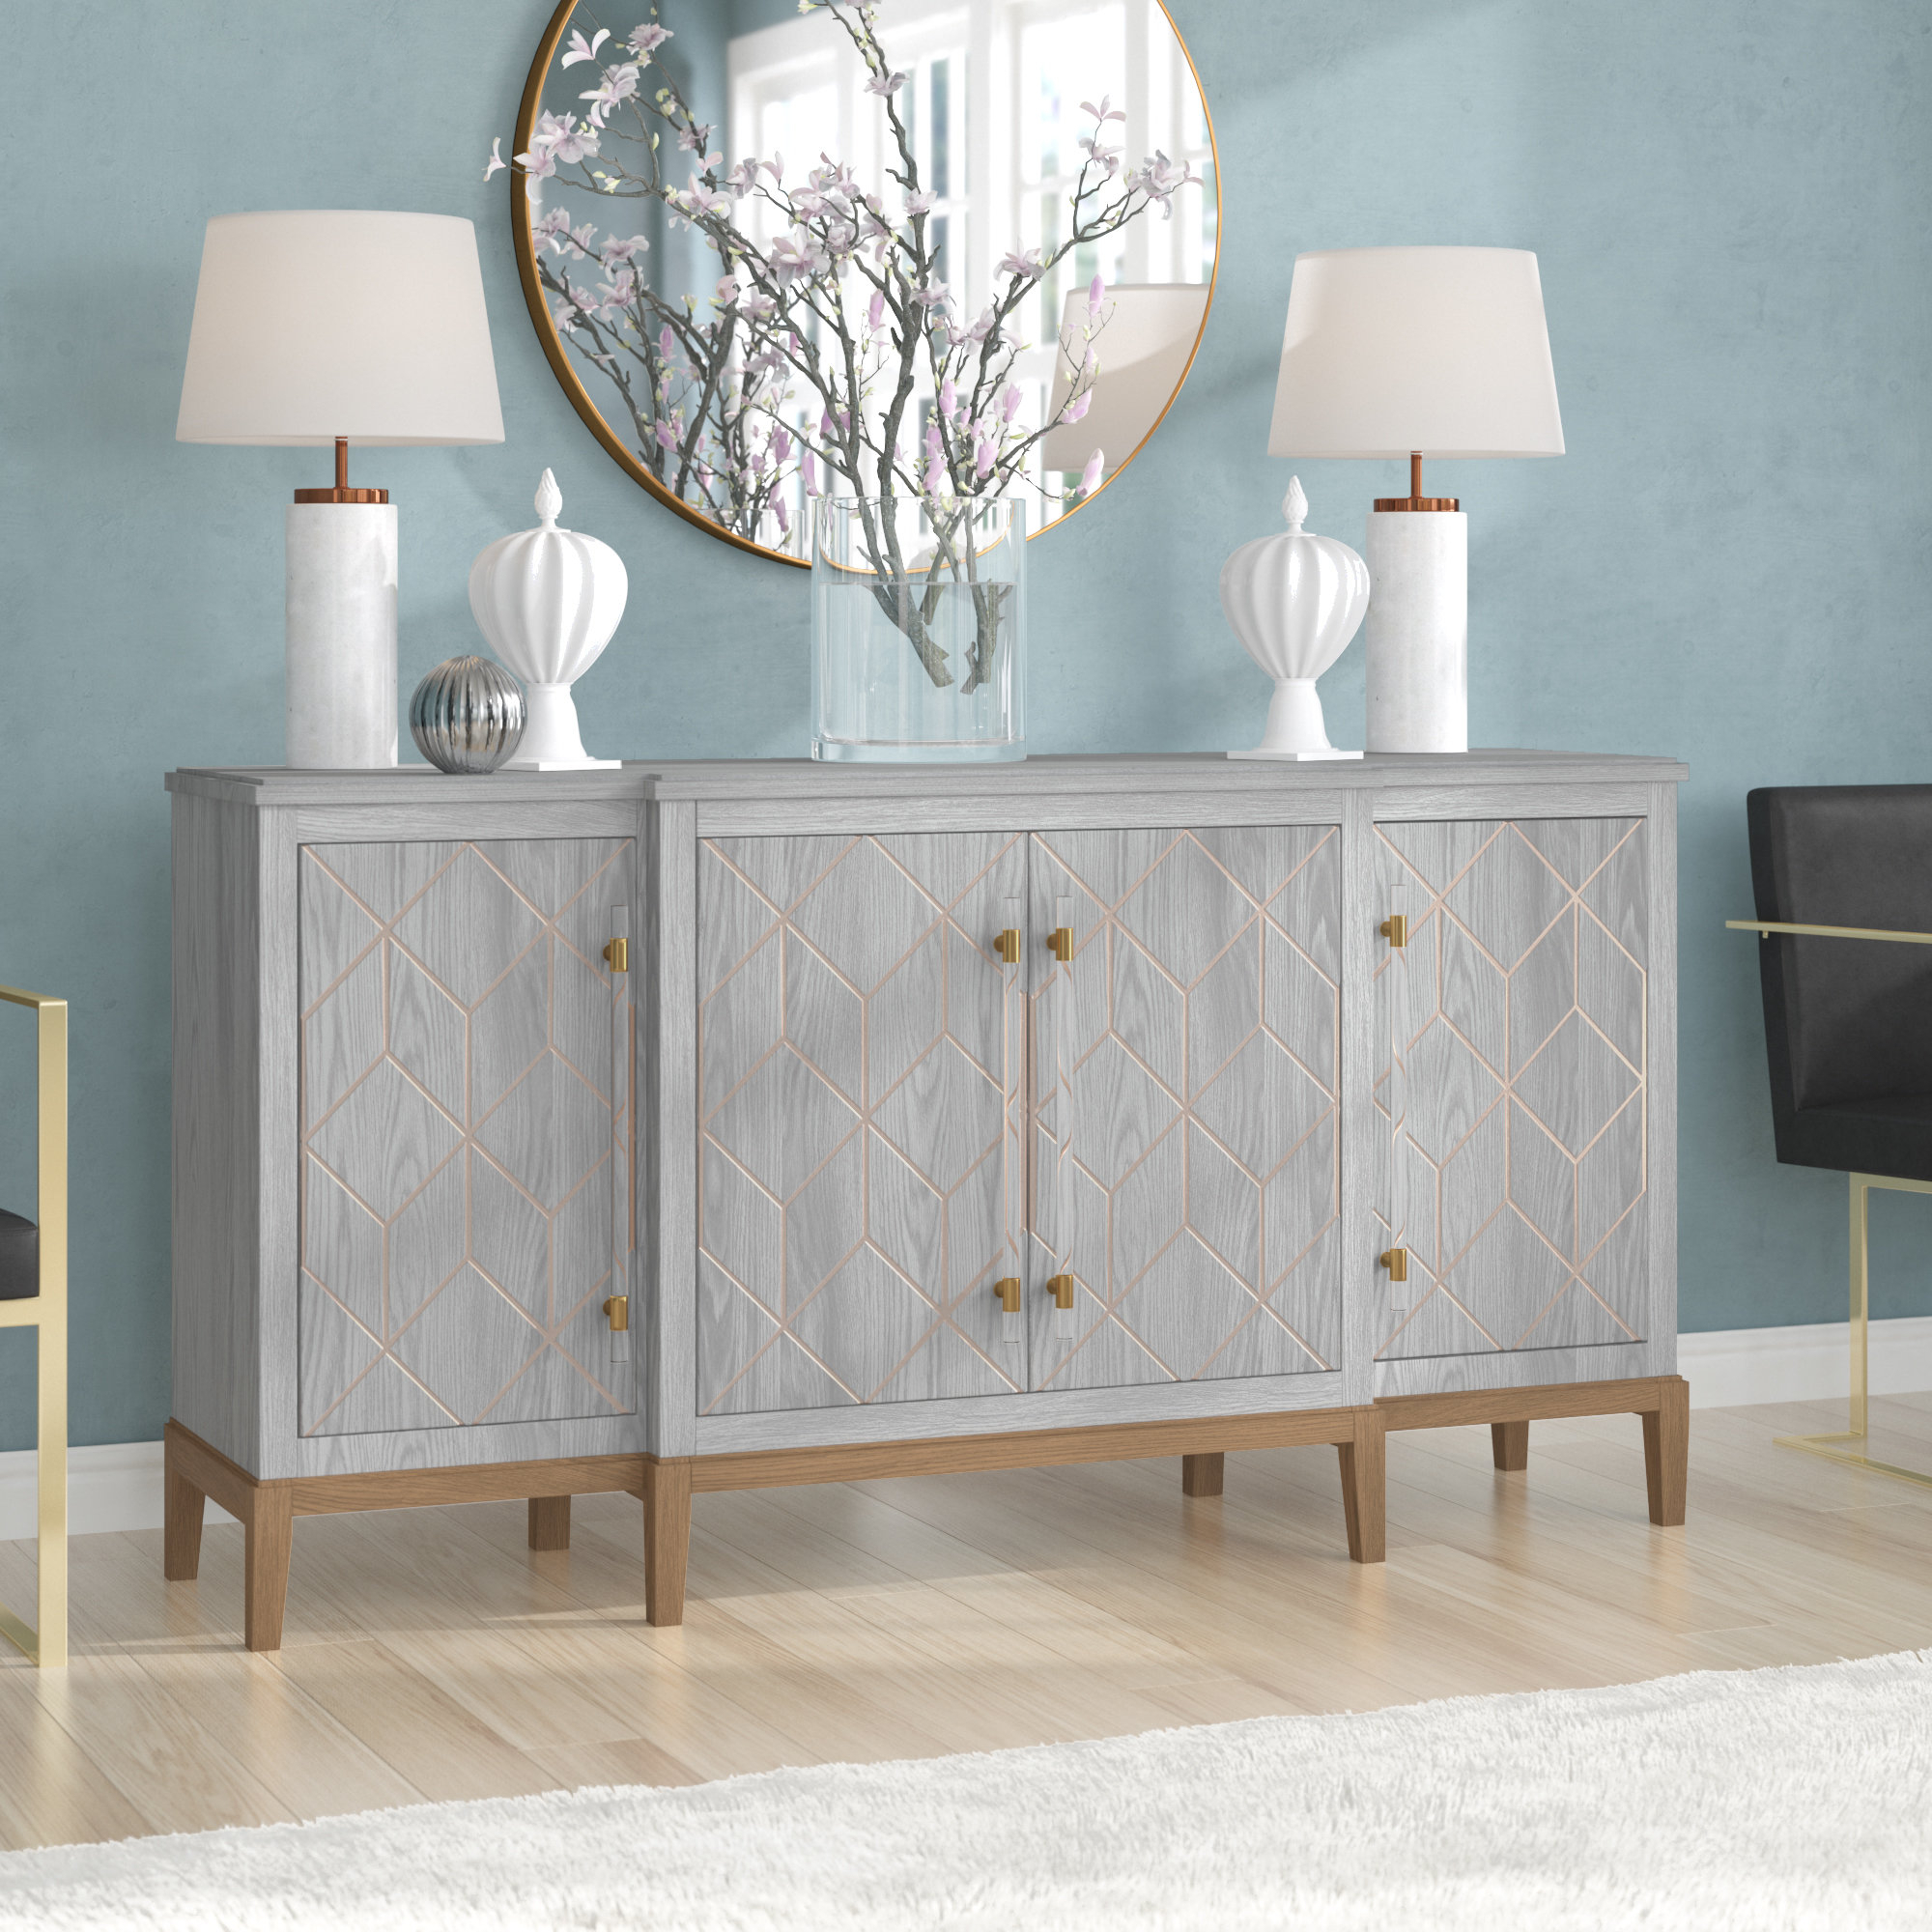 Sideboards & Buffet Tables You'll Love In 2019 | Wayfair With Regard To Rutherford Sideboards (View 8 of 20)